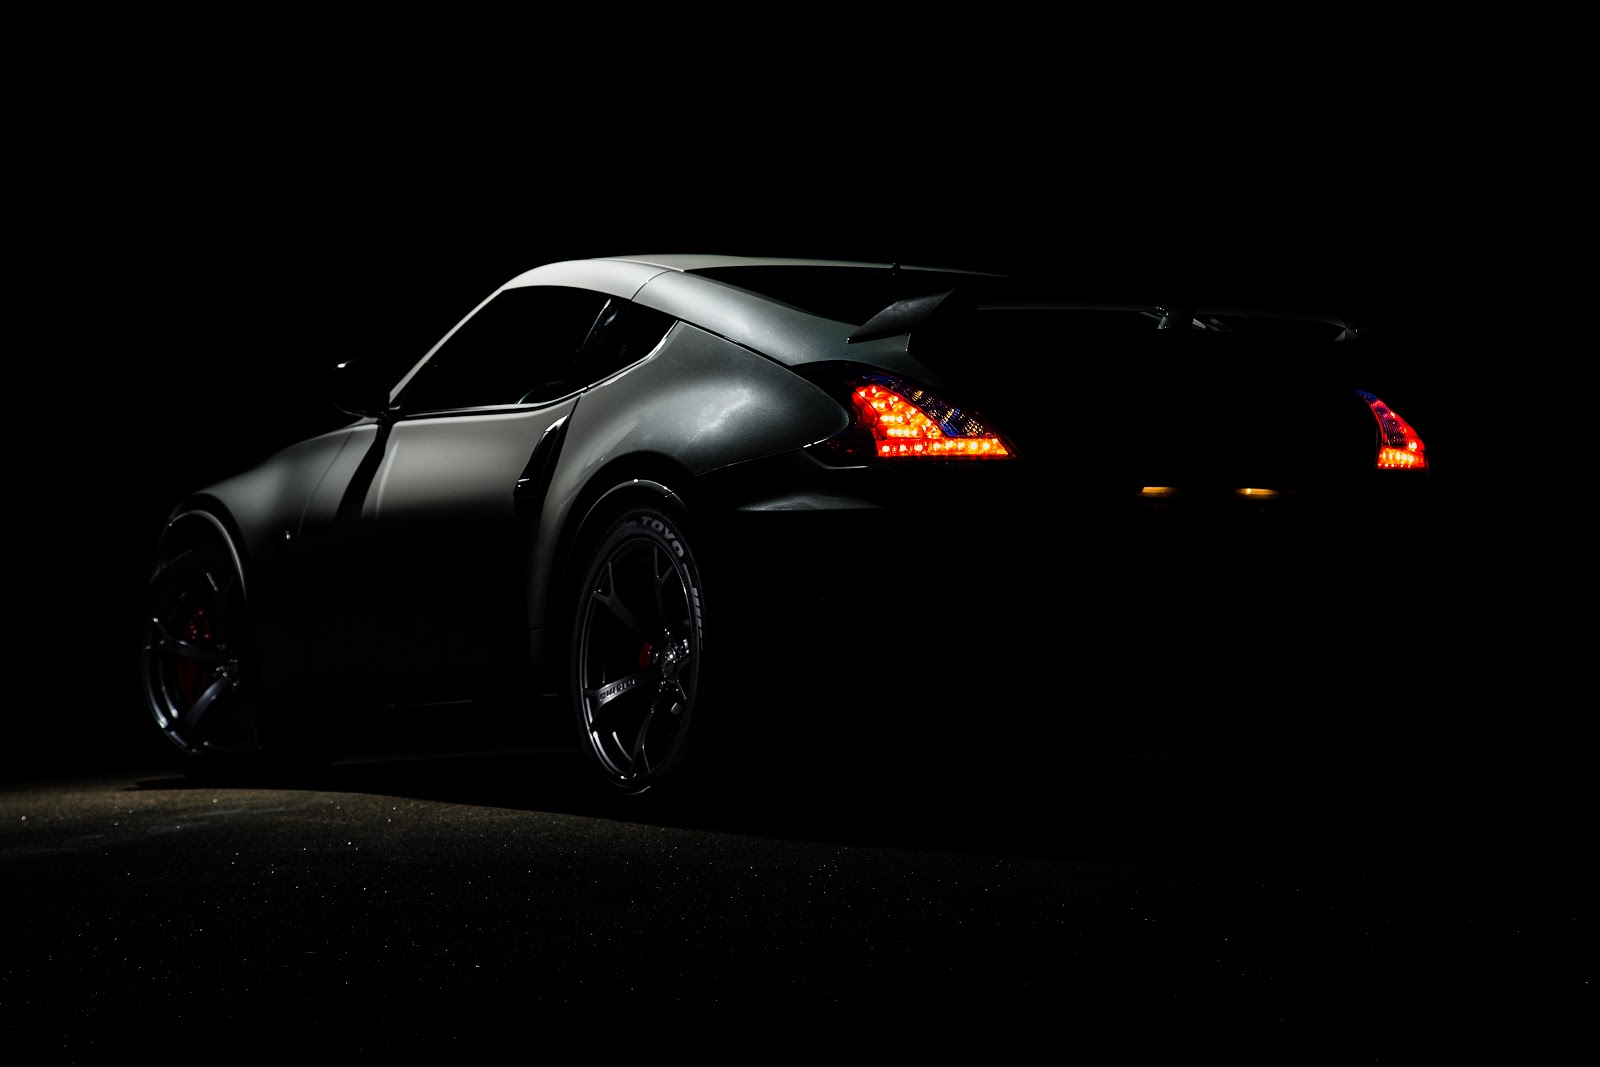 An image of a car in a very dark space. The make or model is hard to determine, but it appears to be sporty and sleek.